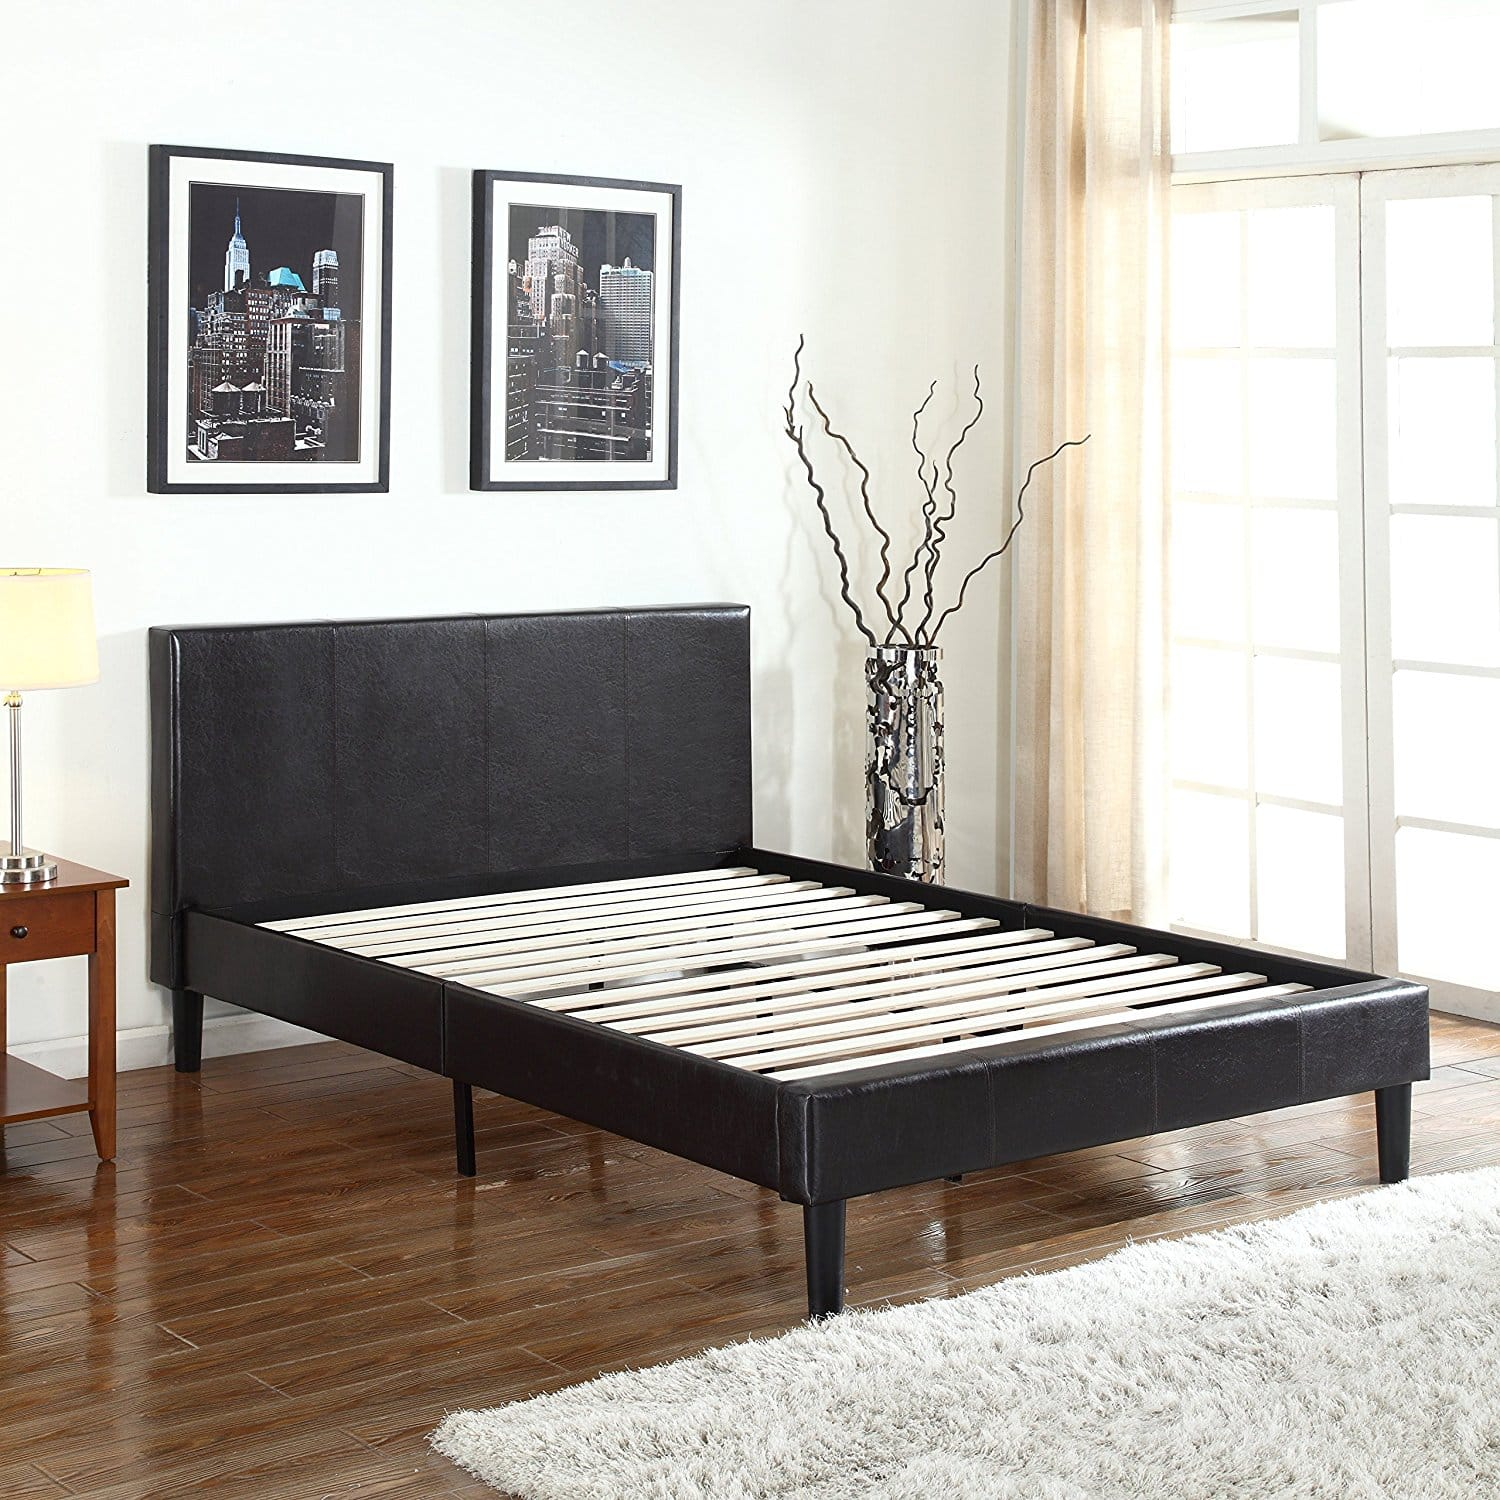 Epic Divano Roma Furniture Deluxe Bonded Leather Platform Bed with Wooden Slats Queen Free Shipping Tax Slickdeals net